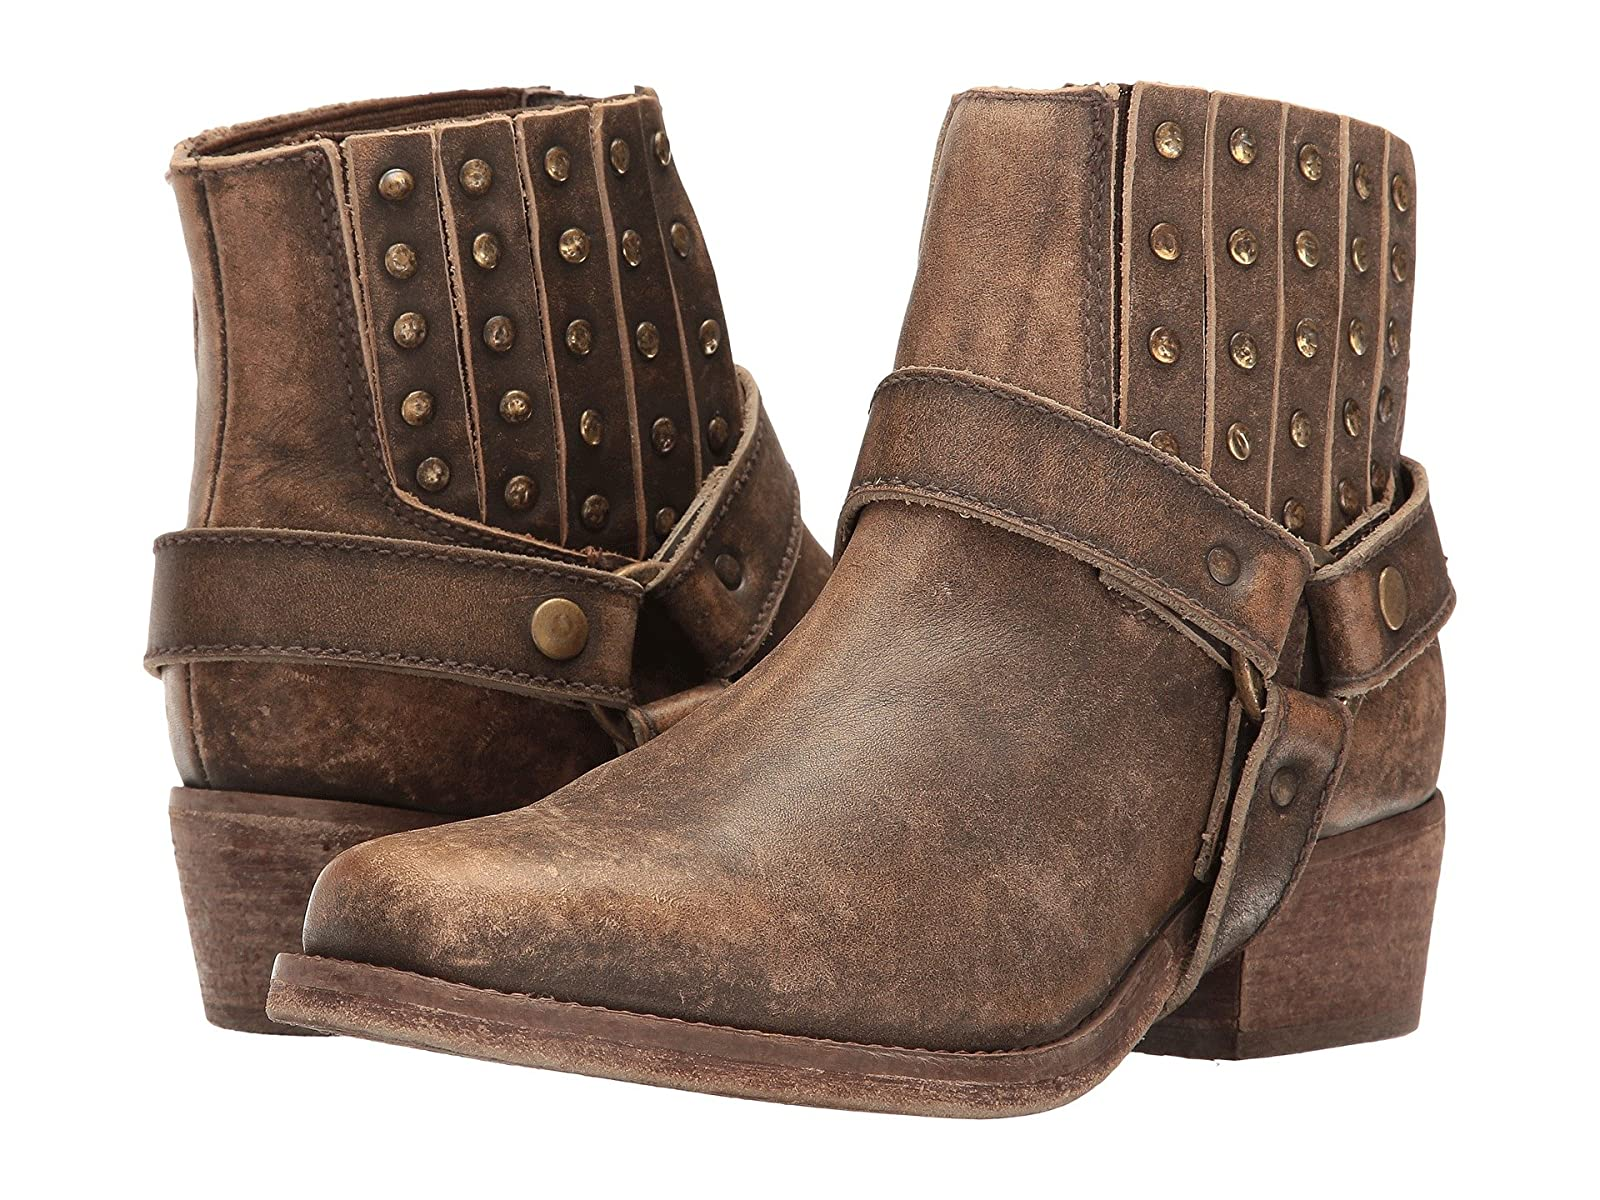 Corral Boots P5037Affordable and distinctive shoes